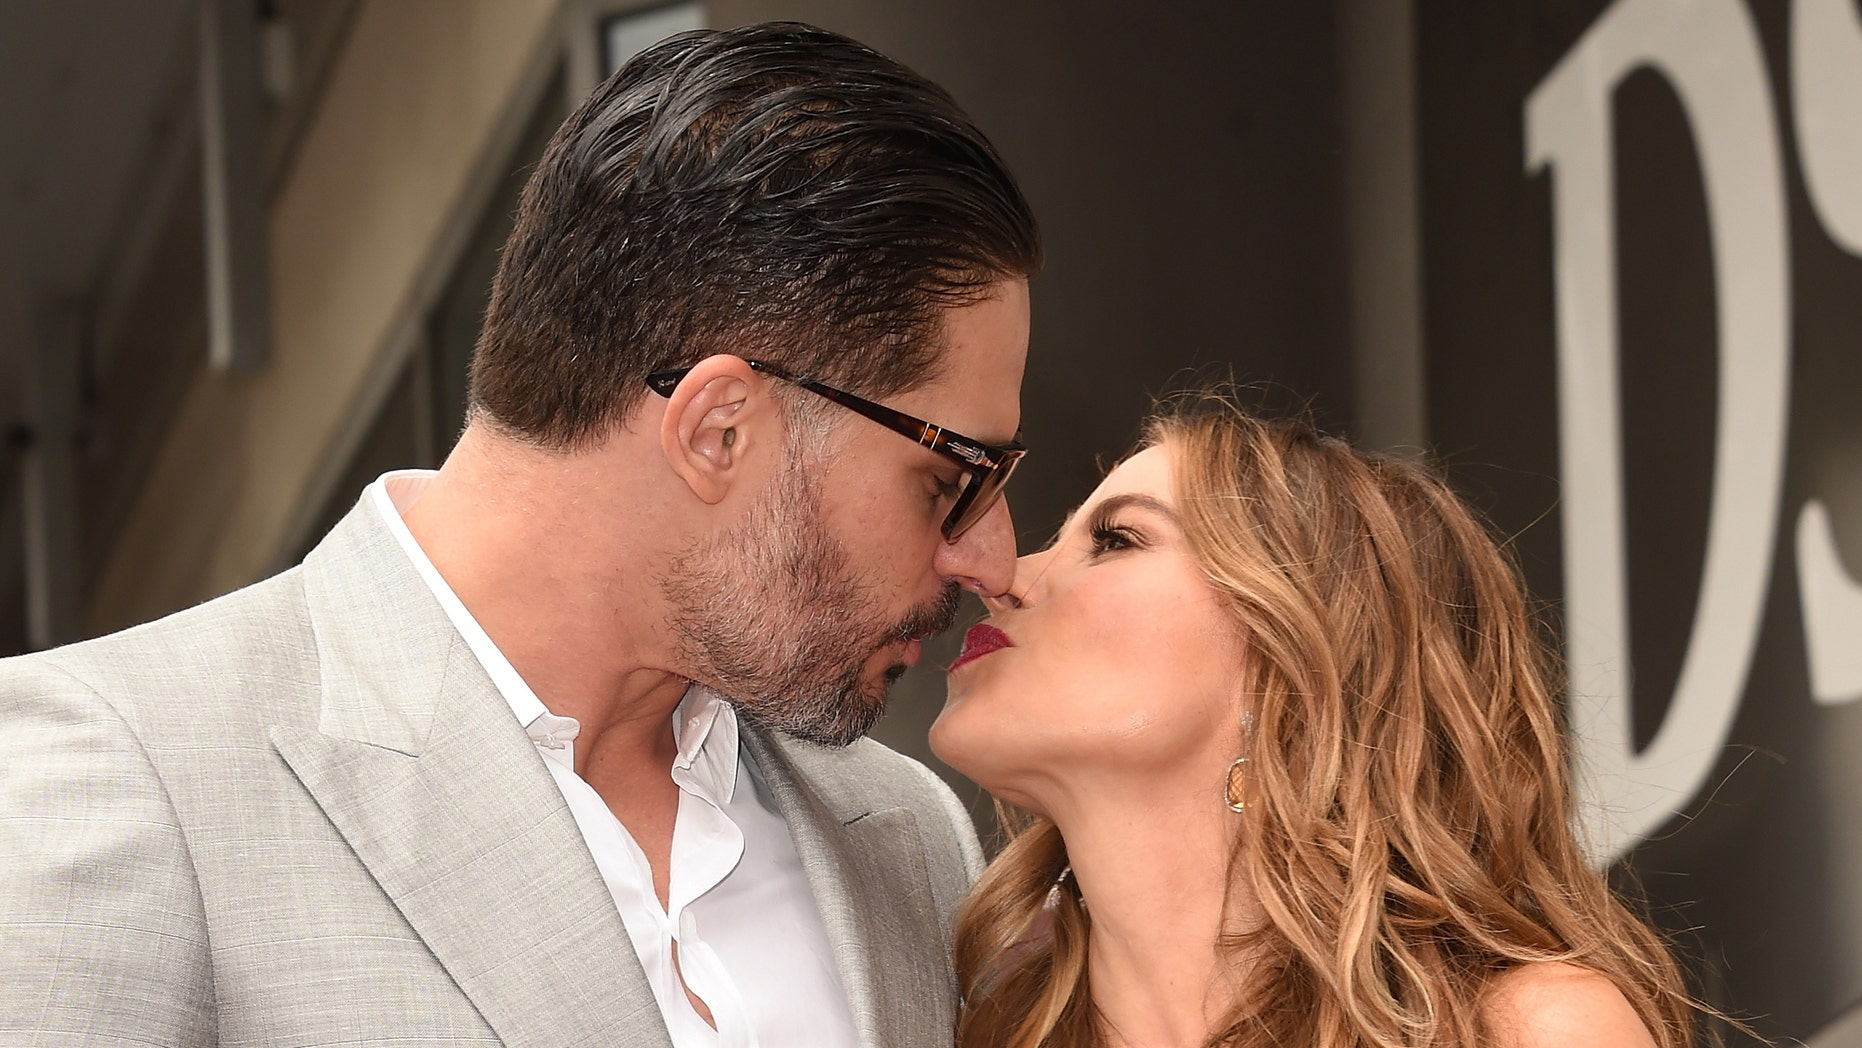 HOLLYWOOD, CA - MAY 07:  Actor Joe Manganiello poses with Sofia Vergara as she is honored on The Hollywood Walk Of Fame on May 7, 2015 in Hollywood, California.  (Photo by Jason Merritt/Getty Images)